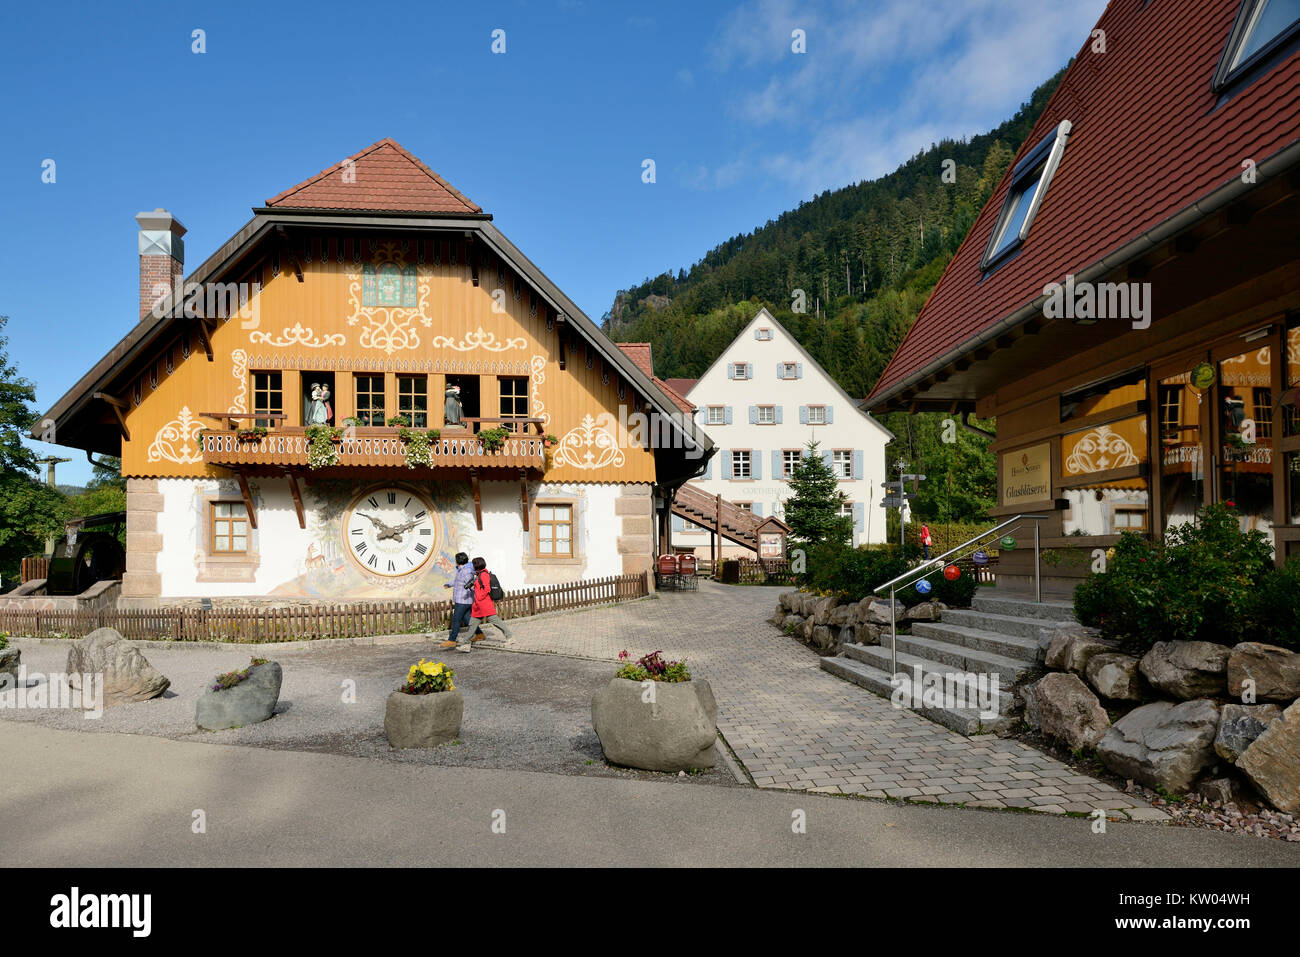 Court property of stars, cuckoo's nest, glass blowing and Goethe's house, Hofgut Sternen, Kuckucksnest, - Stock Image